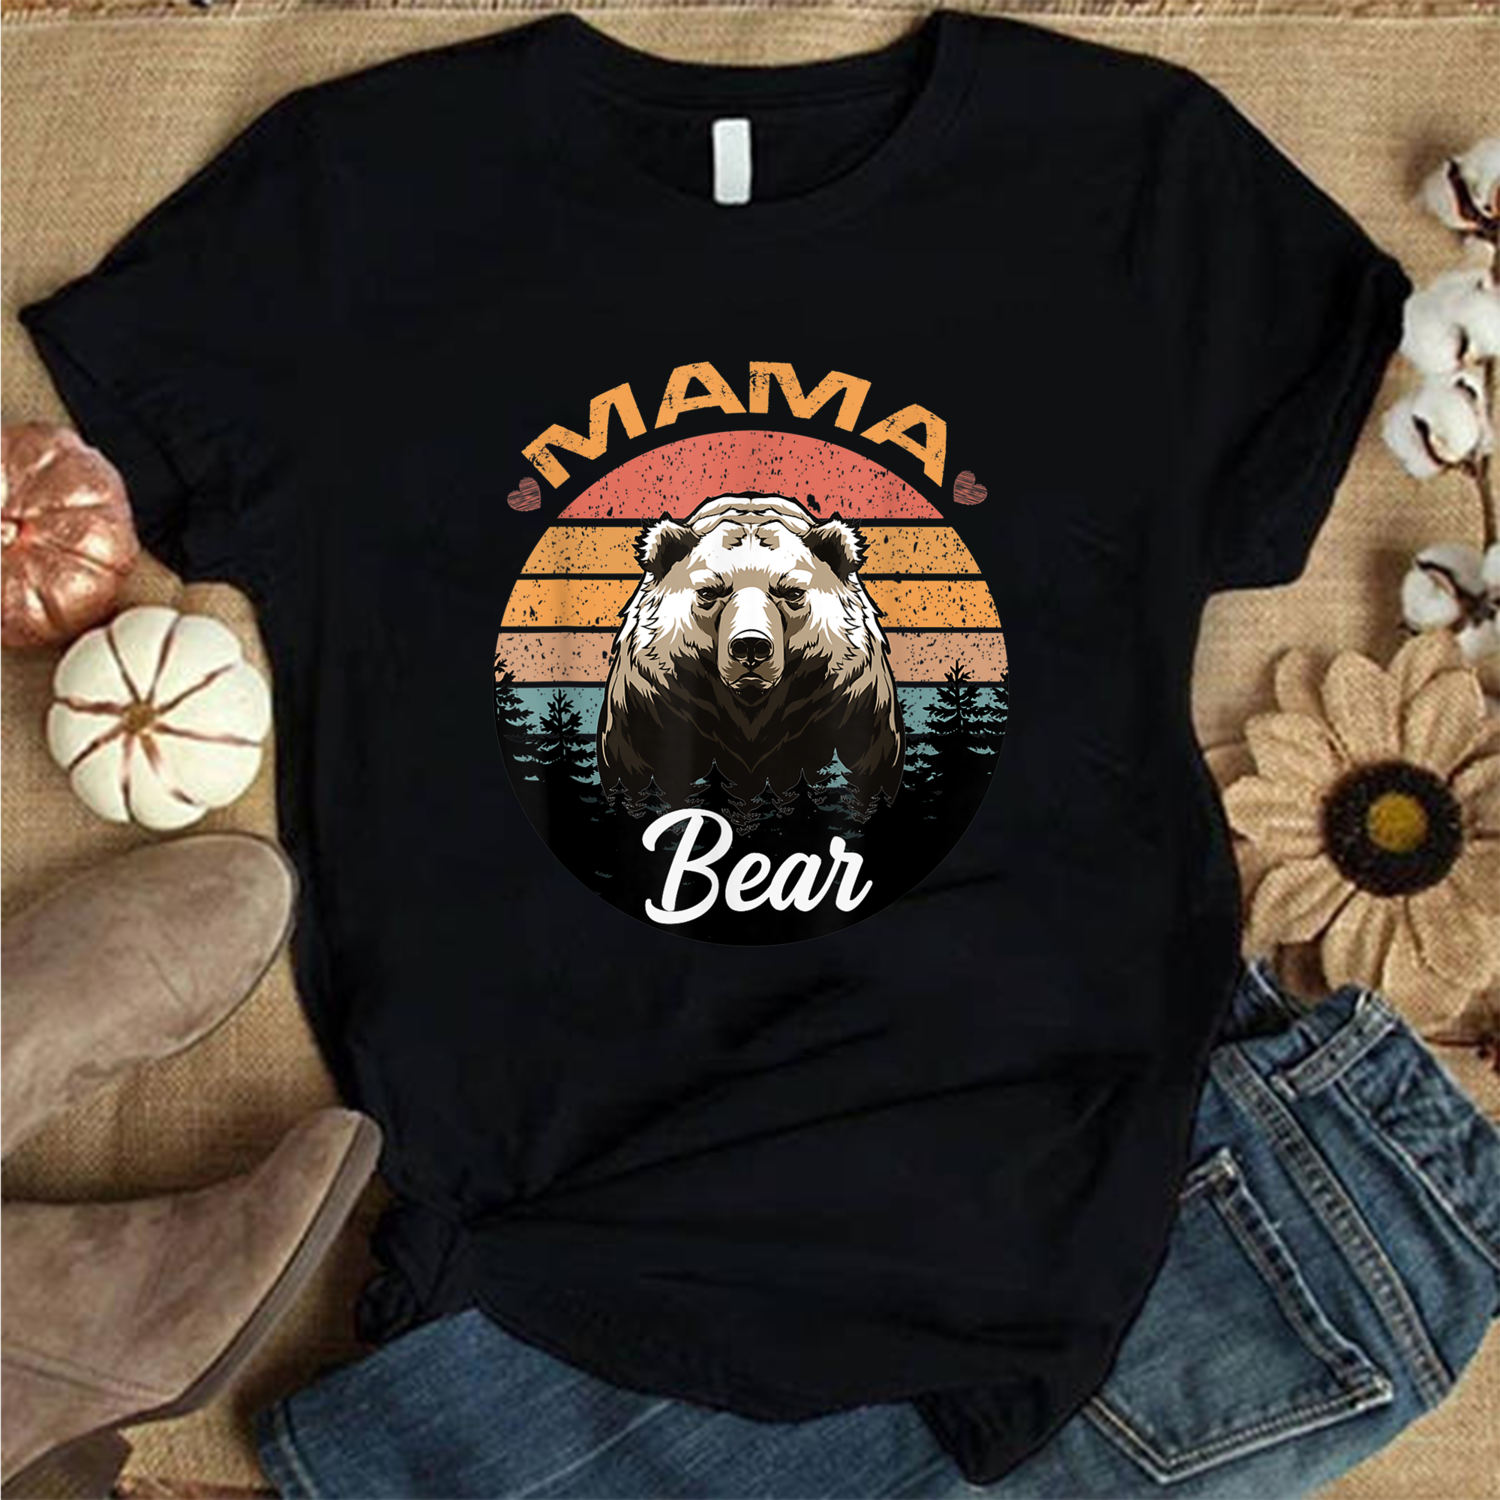 Mama Bear Vintage Retro Sunset Mother's Day Gift Idea 2021, Mother gift T Shirt, Gift for mom, Best Mom Ever Shirt, Mothers Day T Shirt, Mom Life Trending Unisex Hoodies Sweatshirt Long Sleeve V Neck